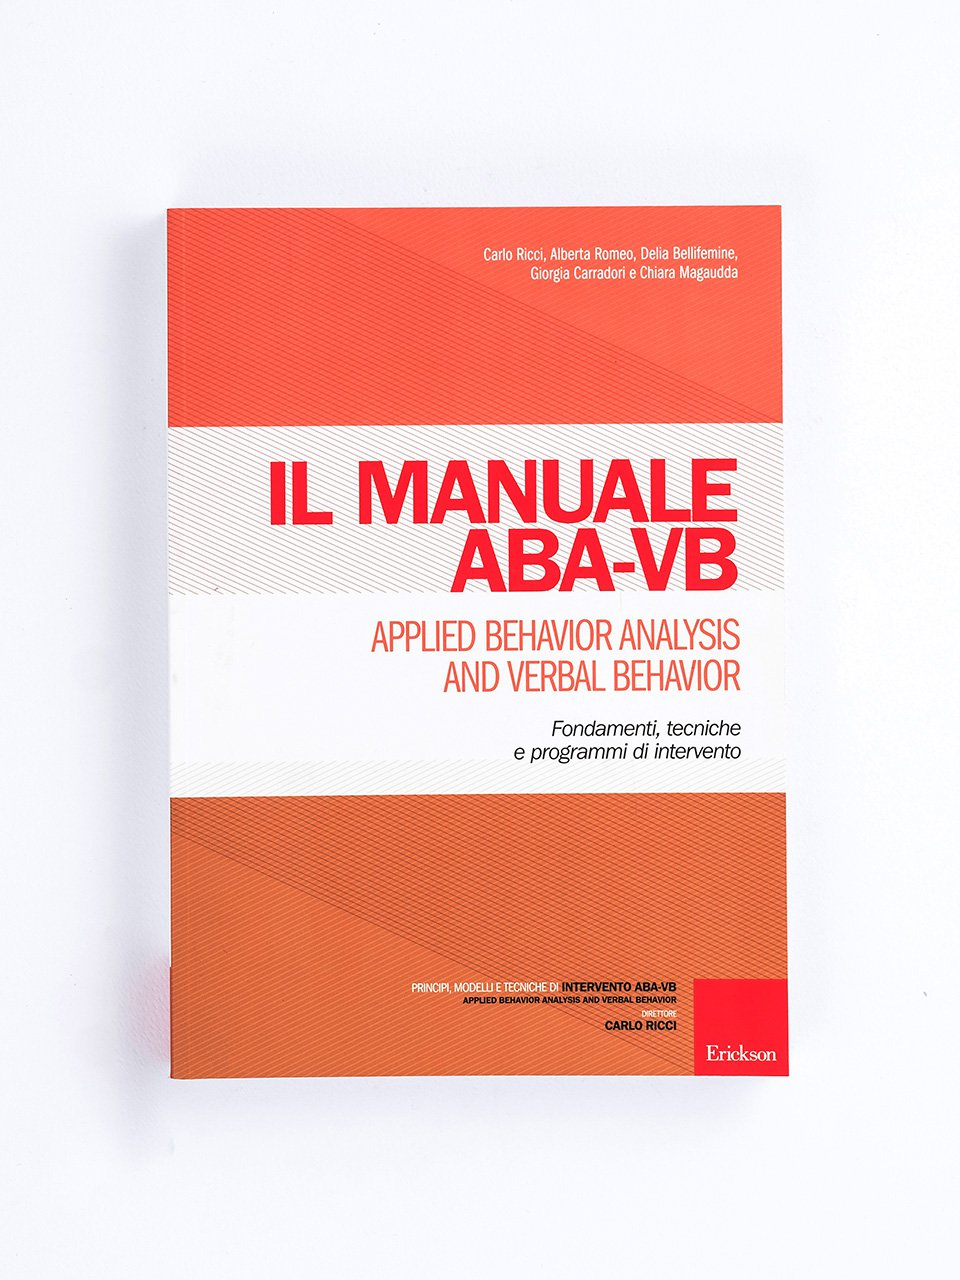 Il manuale ABA-VB - Applied Behavior Analysis and Verbal Behavior - Corso per tecnico ABA-VB – Modulo 1 (Base) - Formazione - Erickson